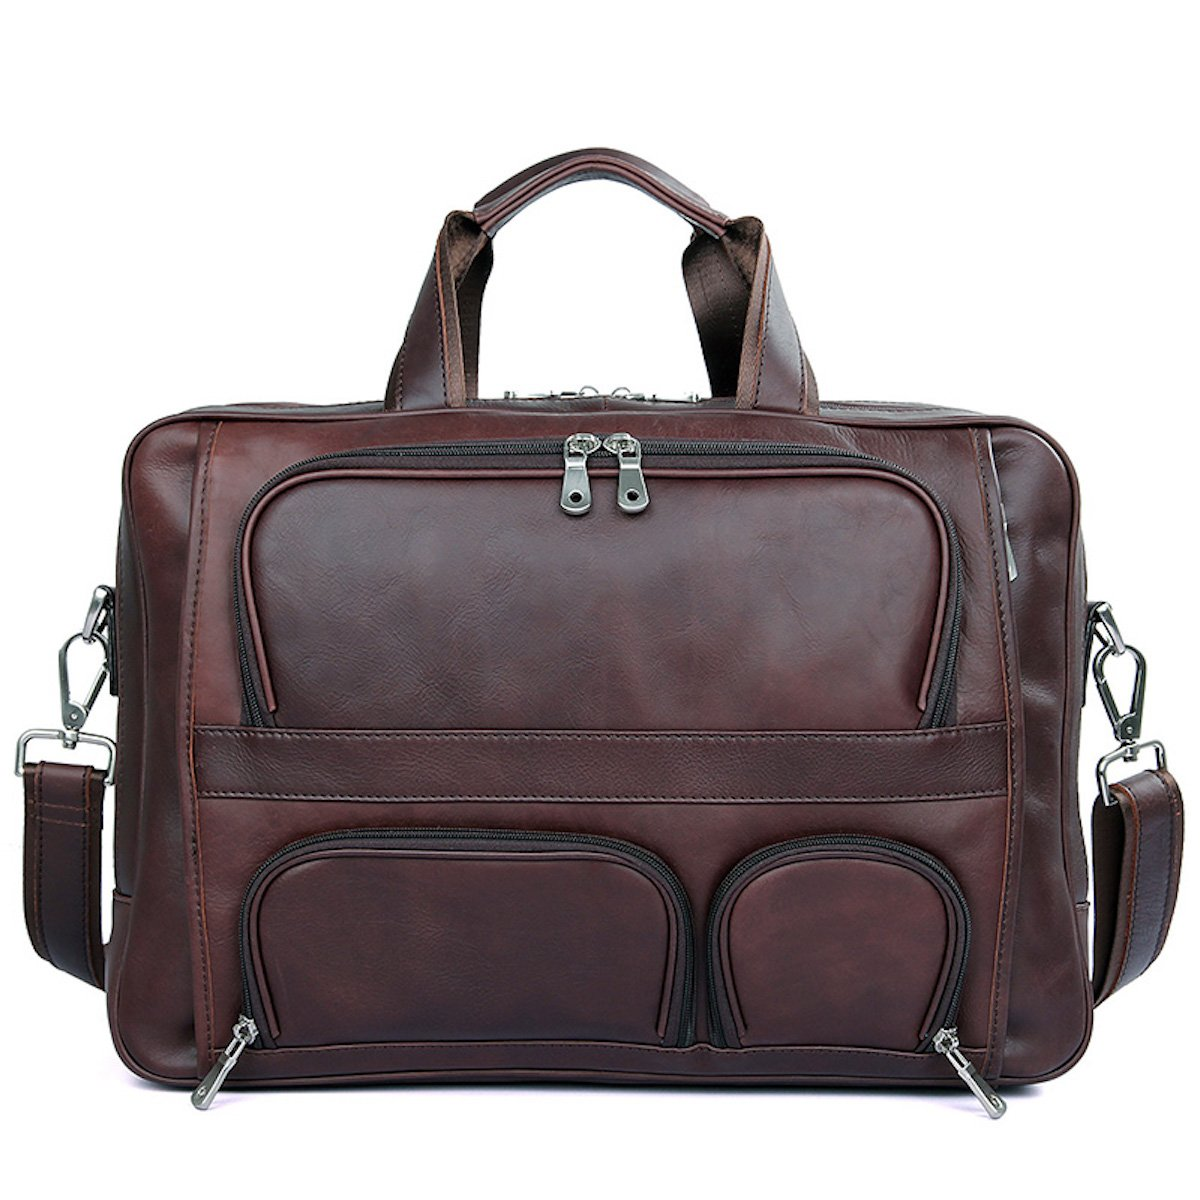 Men's Briefcase Laptop Bag Mens Business Bag 48h Expandable Travel Brief Leather Brown by Clean Vintage